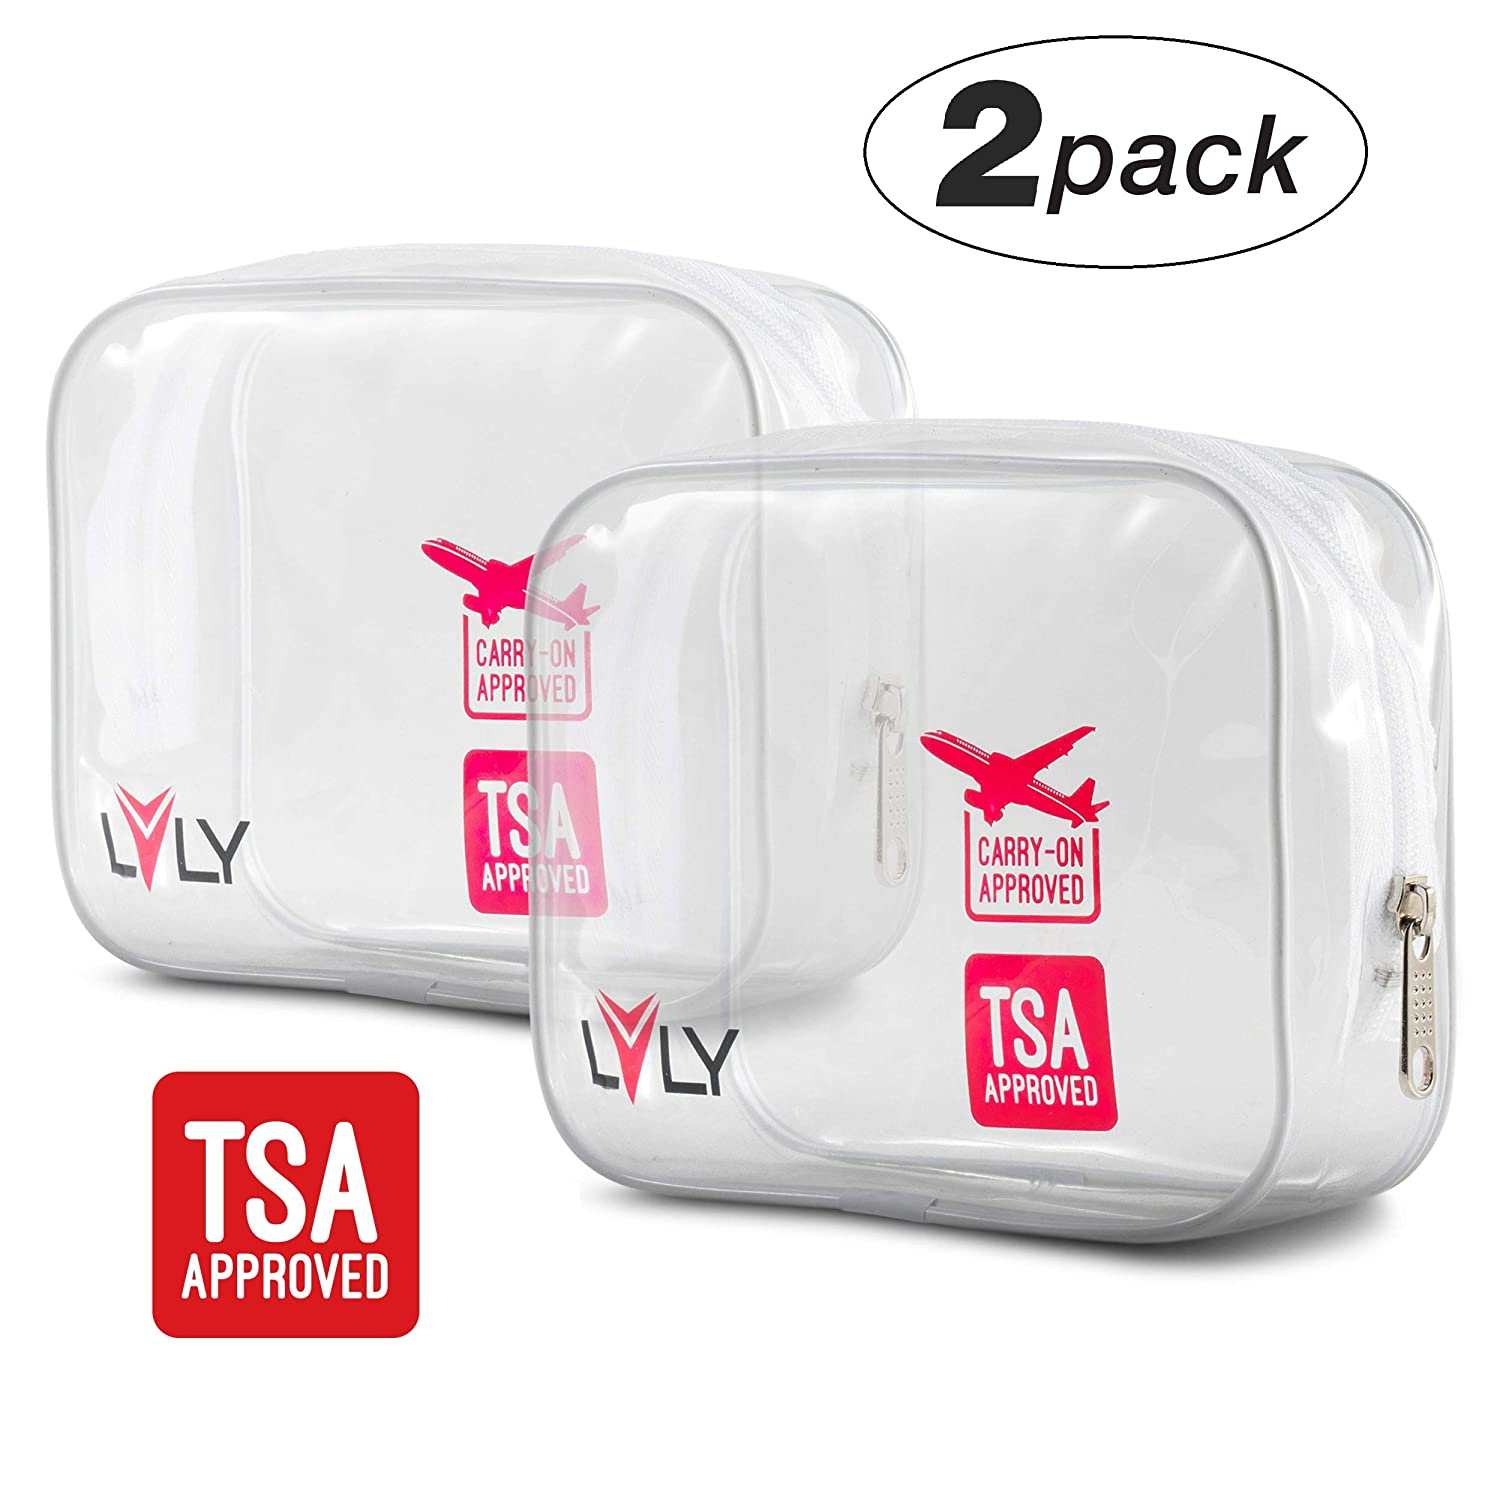 TSA Approved Quart Size Toiletry Bag – Clear for Travel Size Toiletries Shaving Kit or Makeup and Cosmetic Accessories – For Women or Men by LVLY